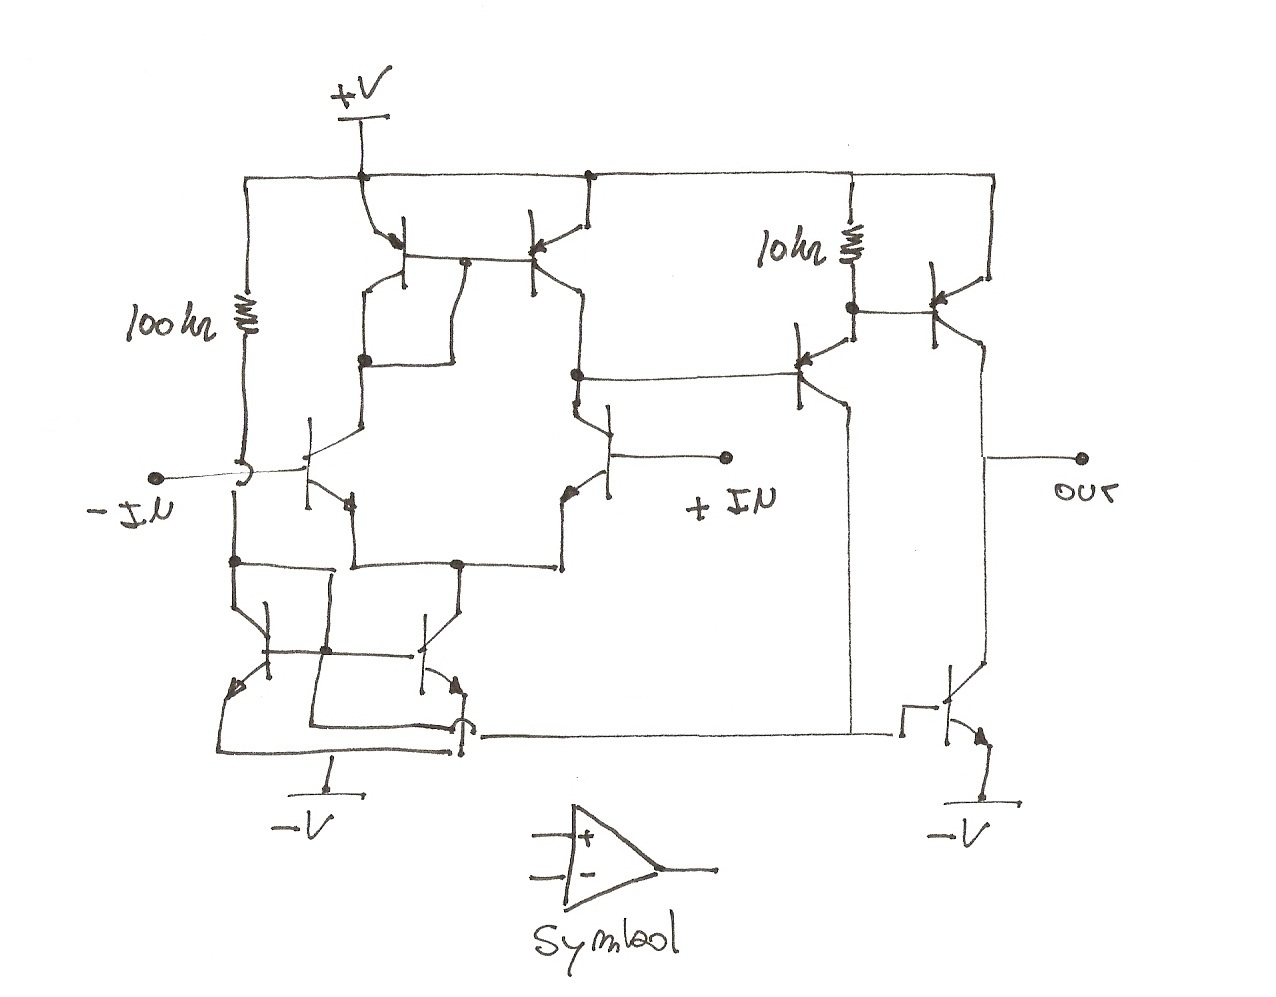 Schematic Diagram Of Timer Circuit Everything About Wiring 555 Diagrams Impractical With Transistors Ssihla 42 1111 For Gyroscope